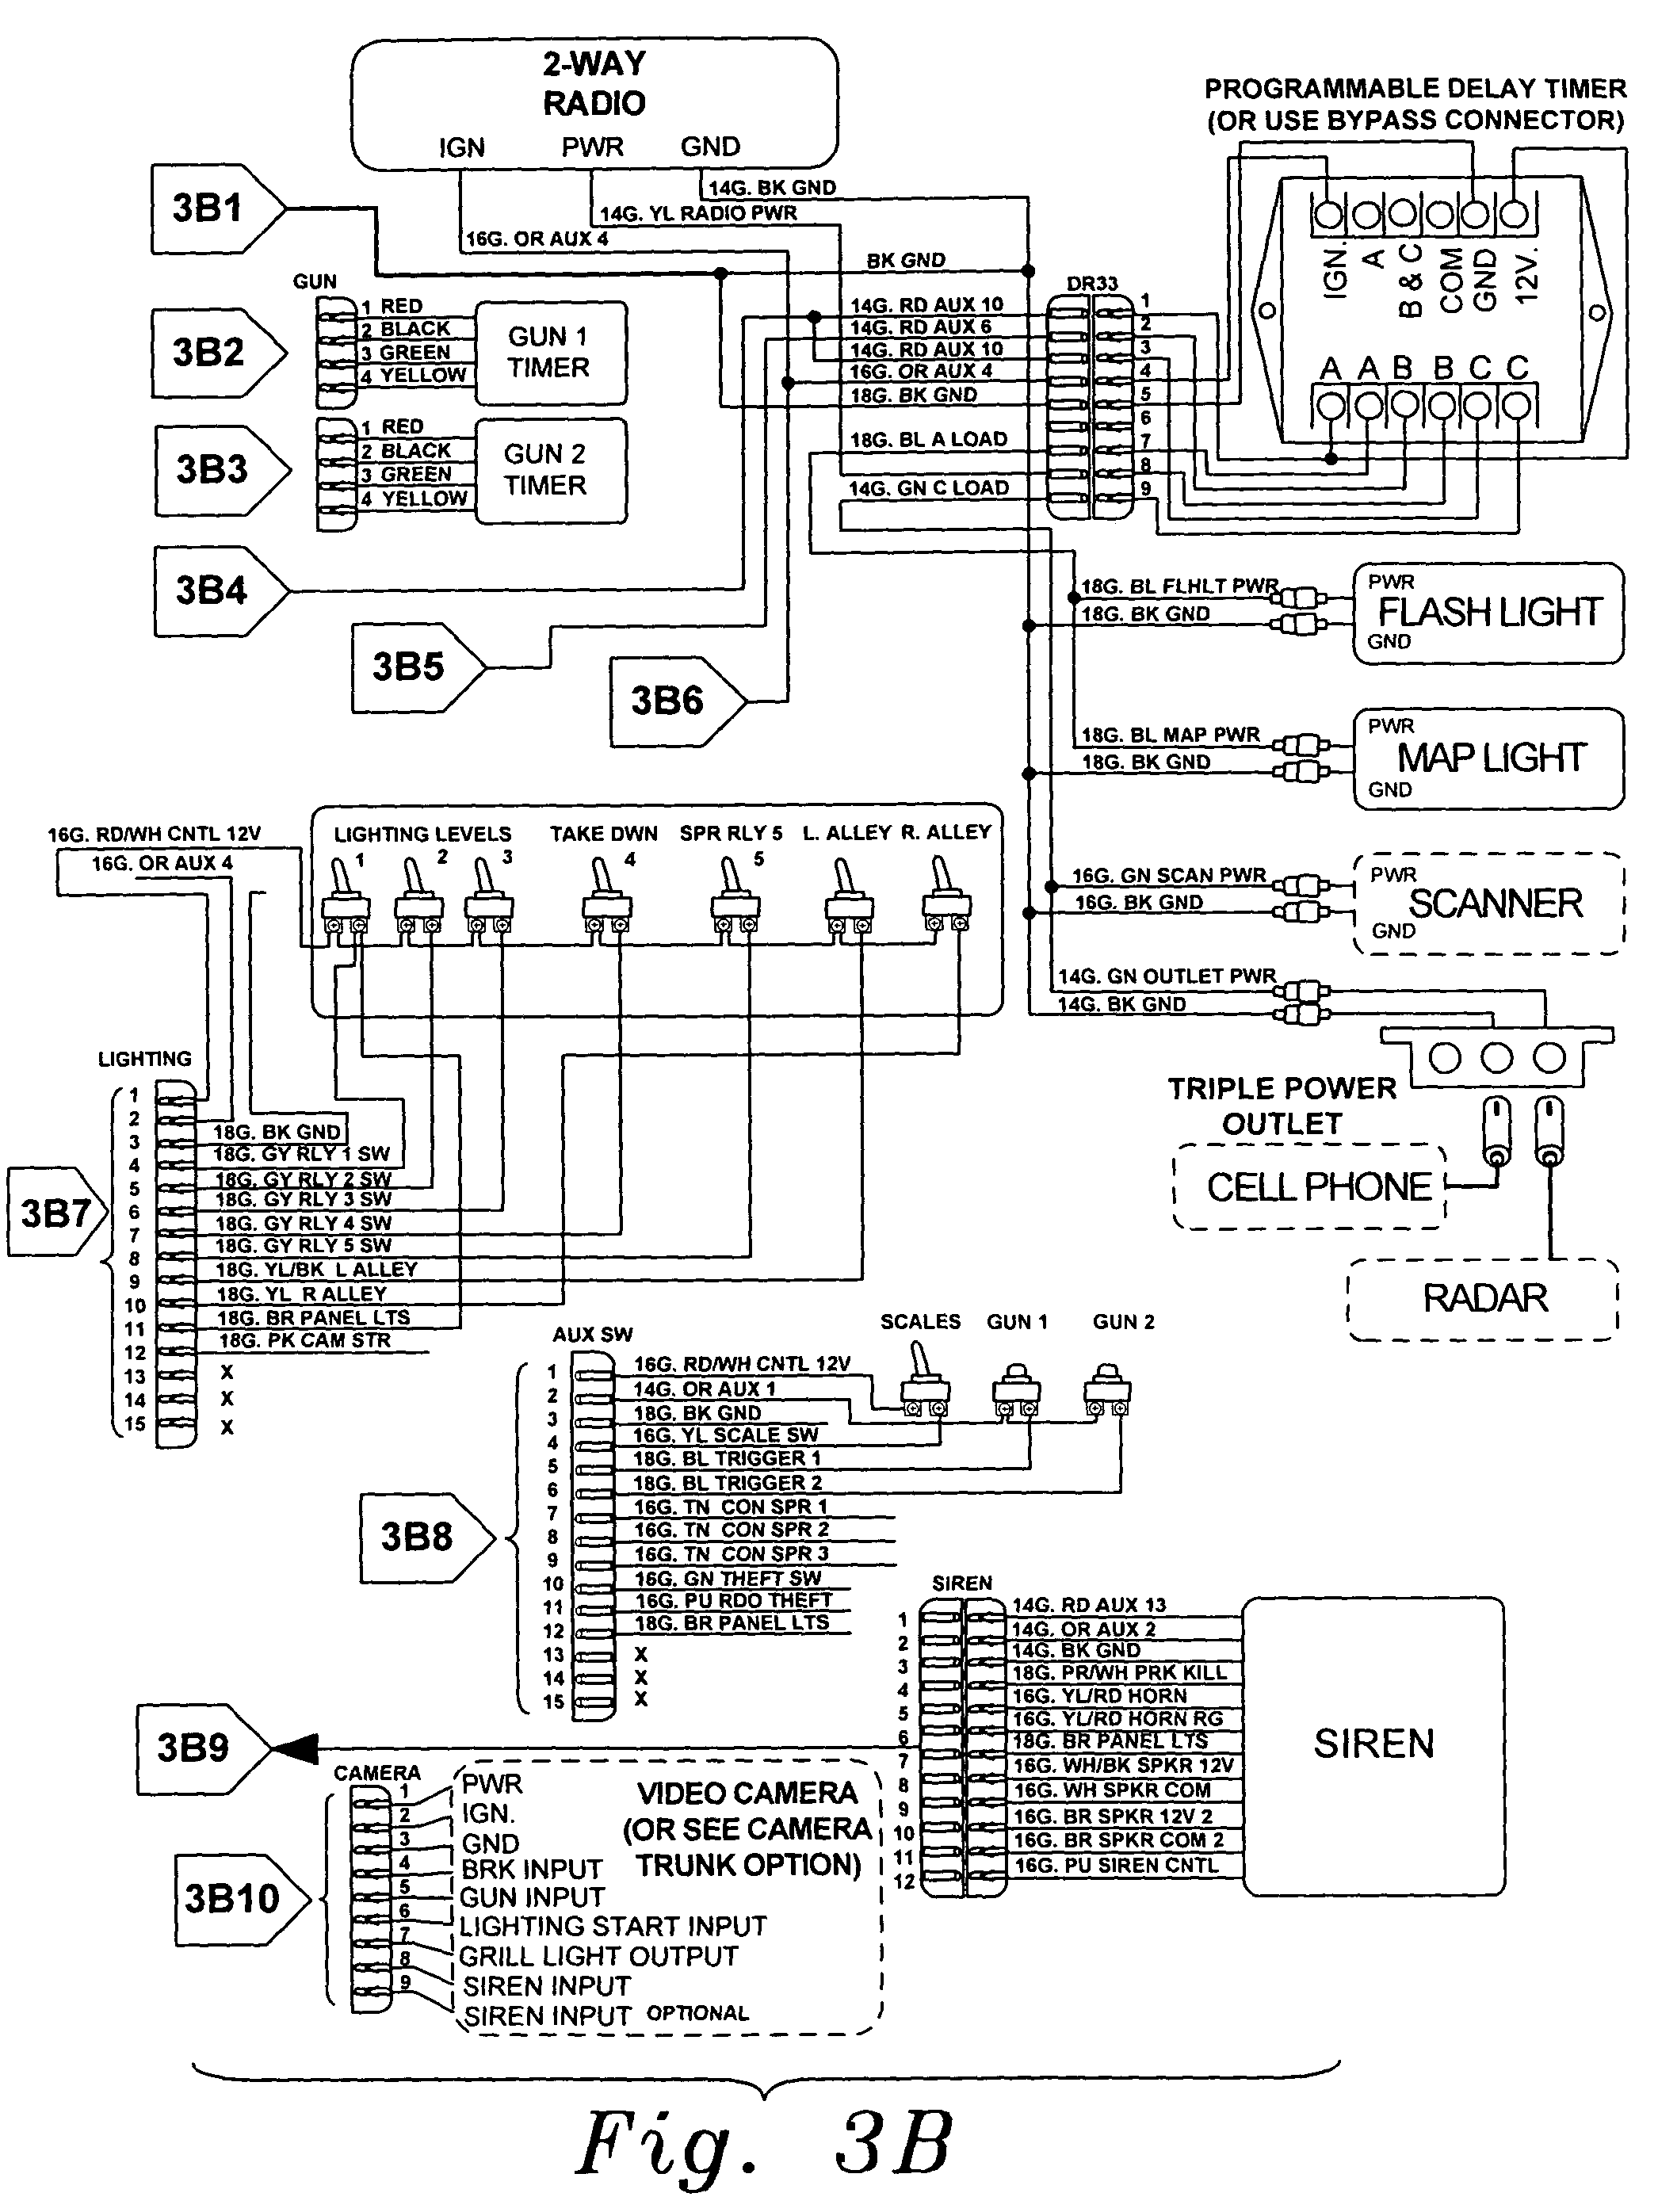 US07342325 20080311 D00005 code 3 siren wiring diagram car alarm circuit diagram \u2022 wiring 3 -Way Switch Wiring Methods at edmiracle.co